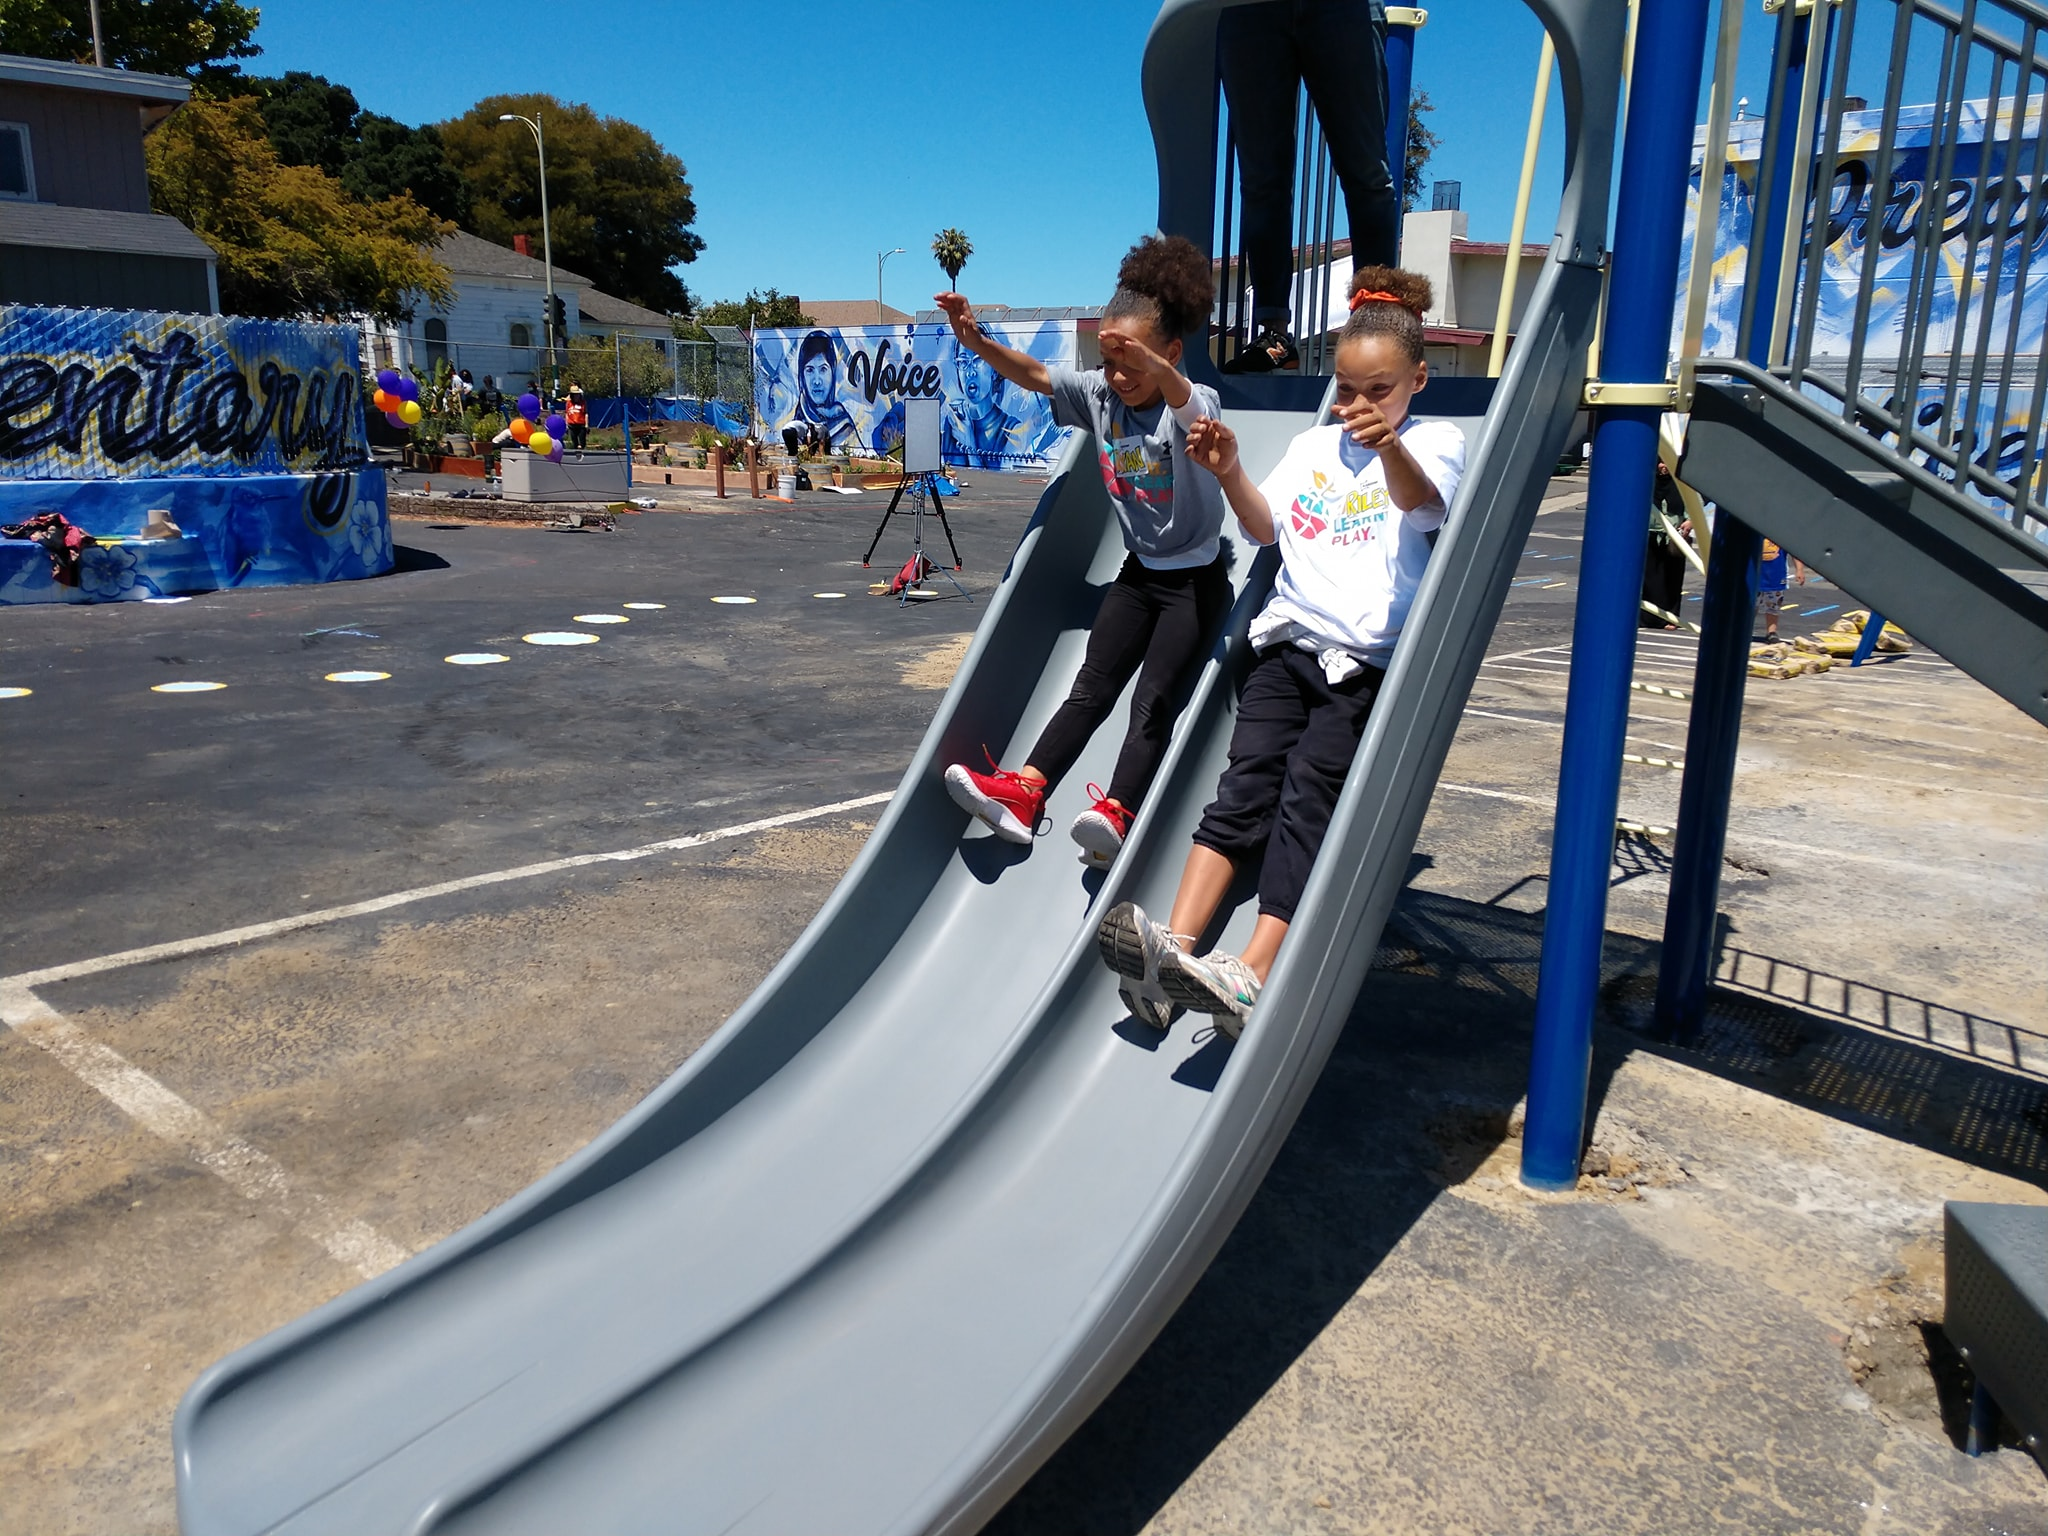 OUSD students playing on playground